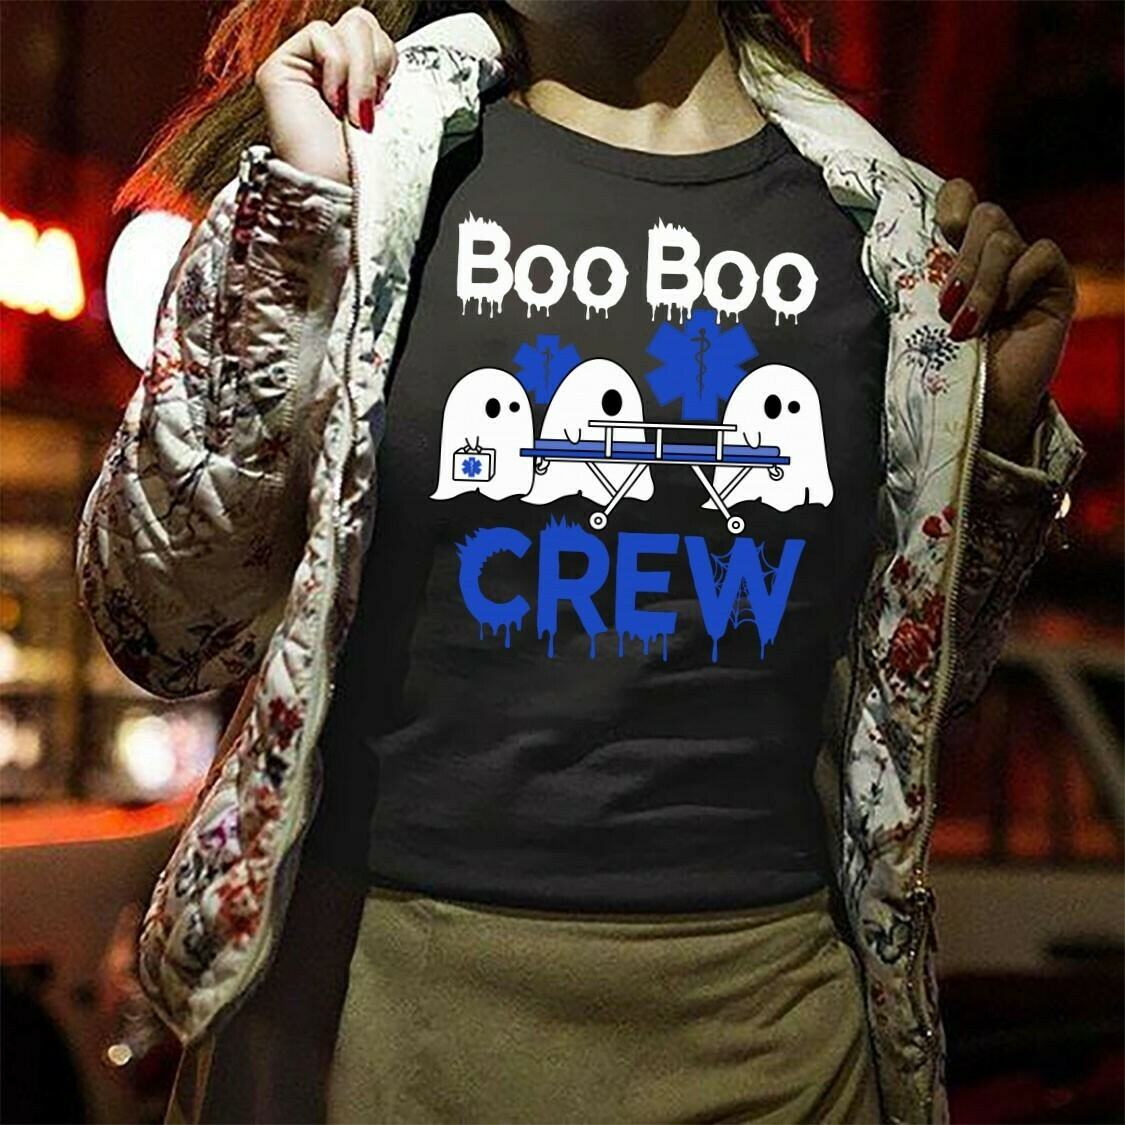 Boo Boo Crew Halloween Nurse Gifts Idea For Yourself And Friends Boo Horror Heartbeats Nursing Student Graduation School Nurse's Day T-Shirt Long Sleeve Sweatshirt Hoodie Jolly Family Gifts